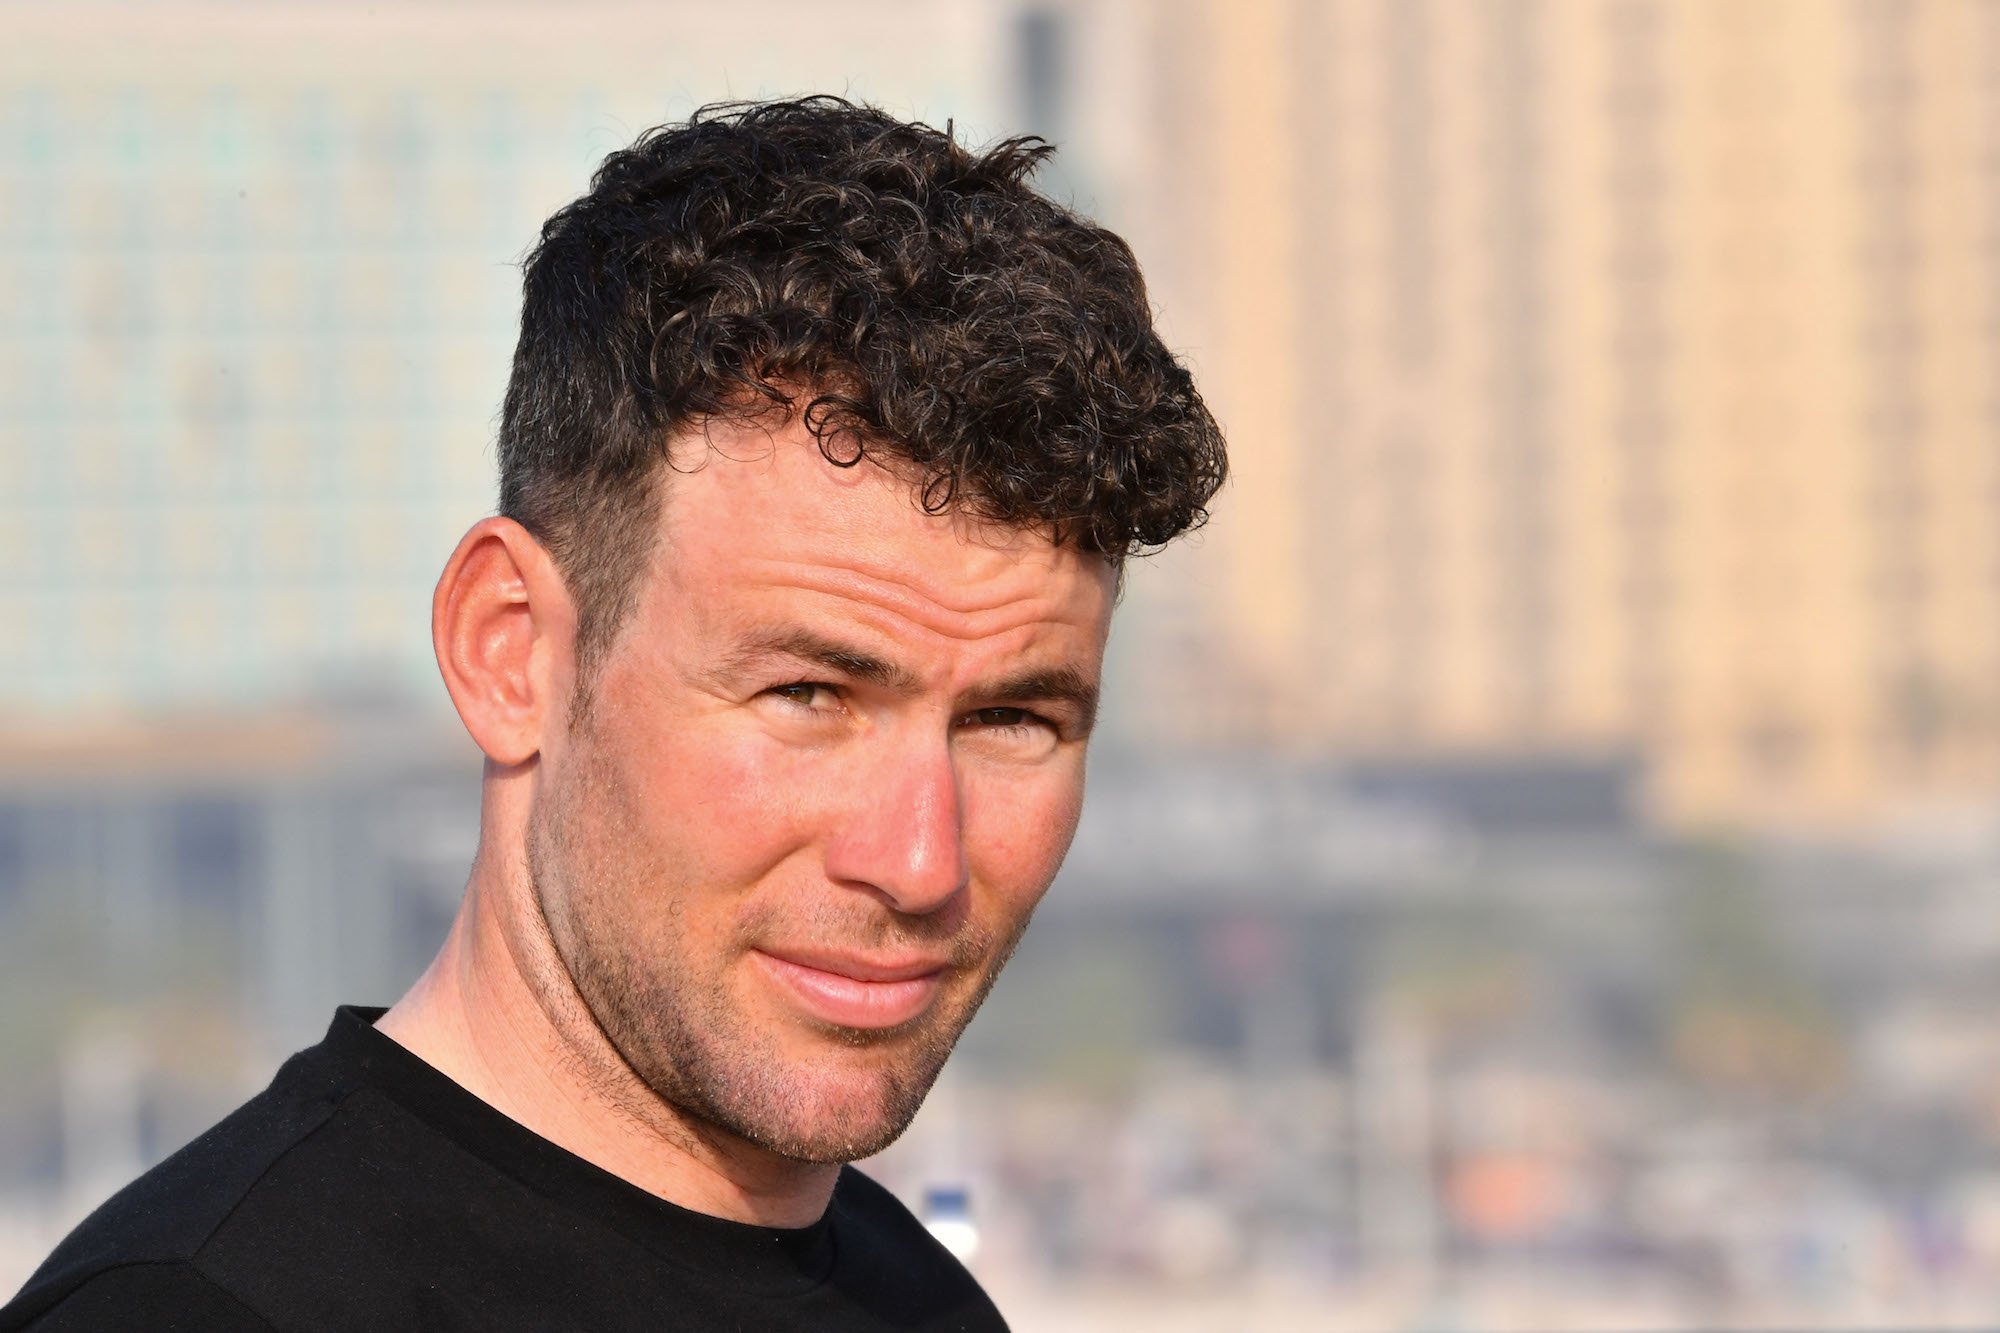 'I'm on a one-year contract': Mark Cavendish feeling fortunate despite uncertain future - Cycling Weekly